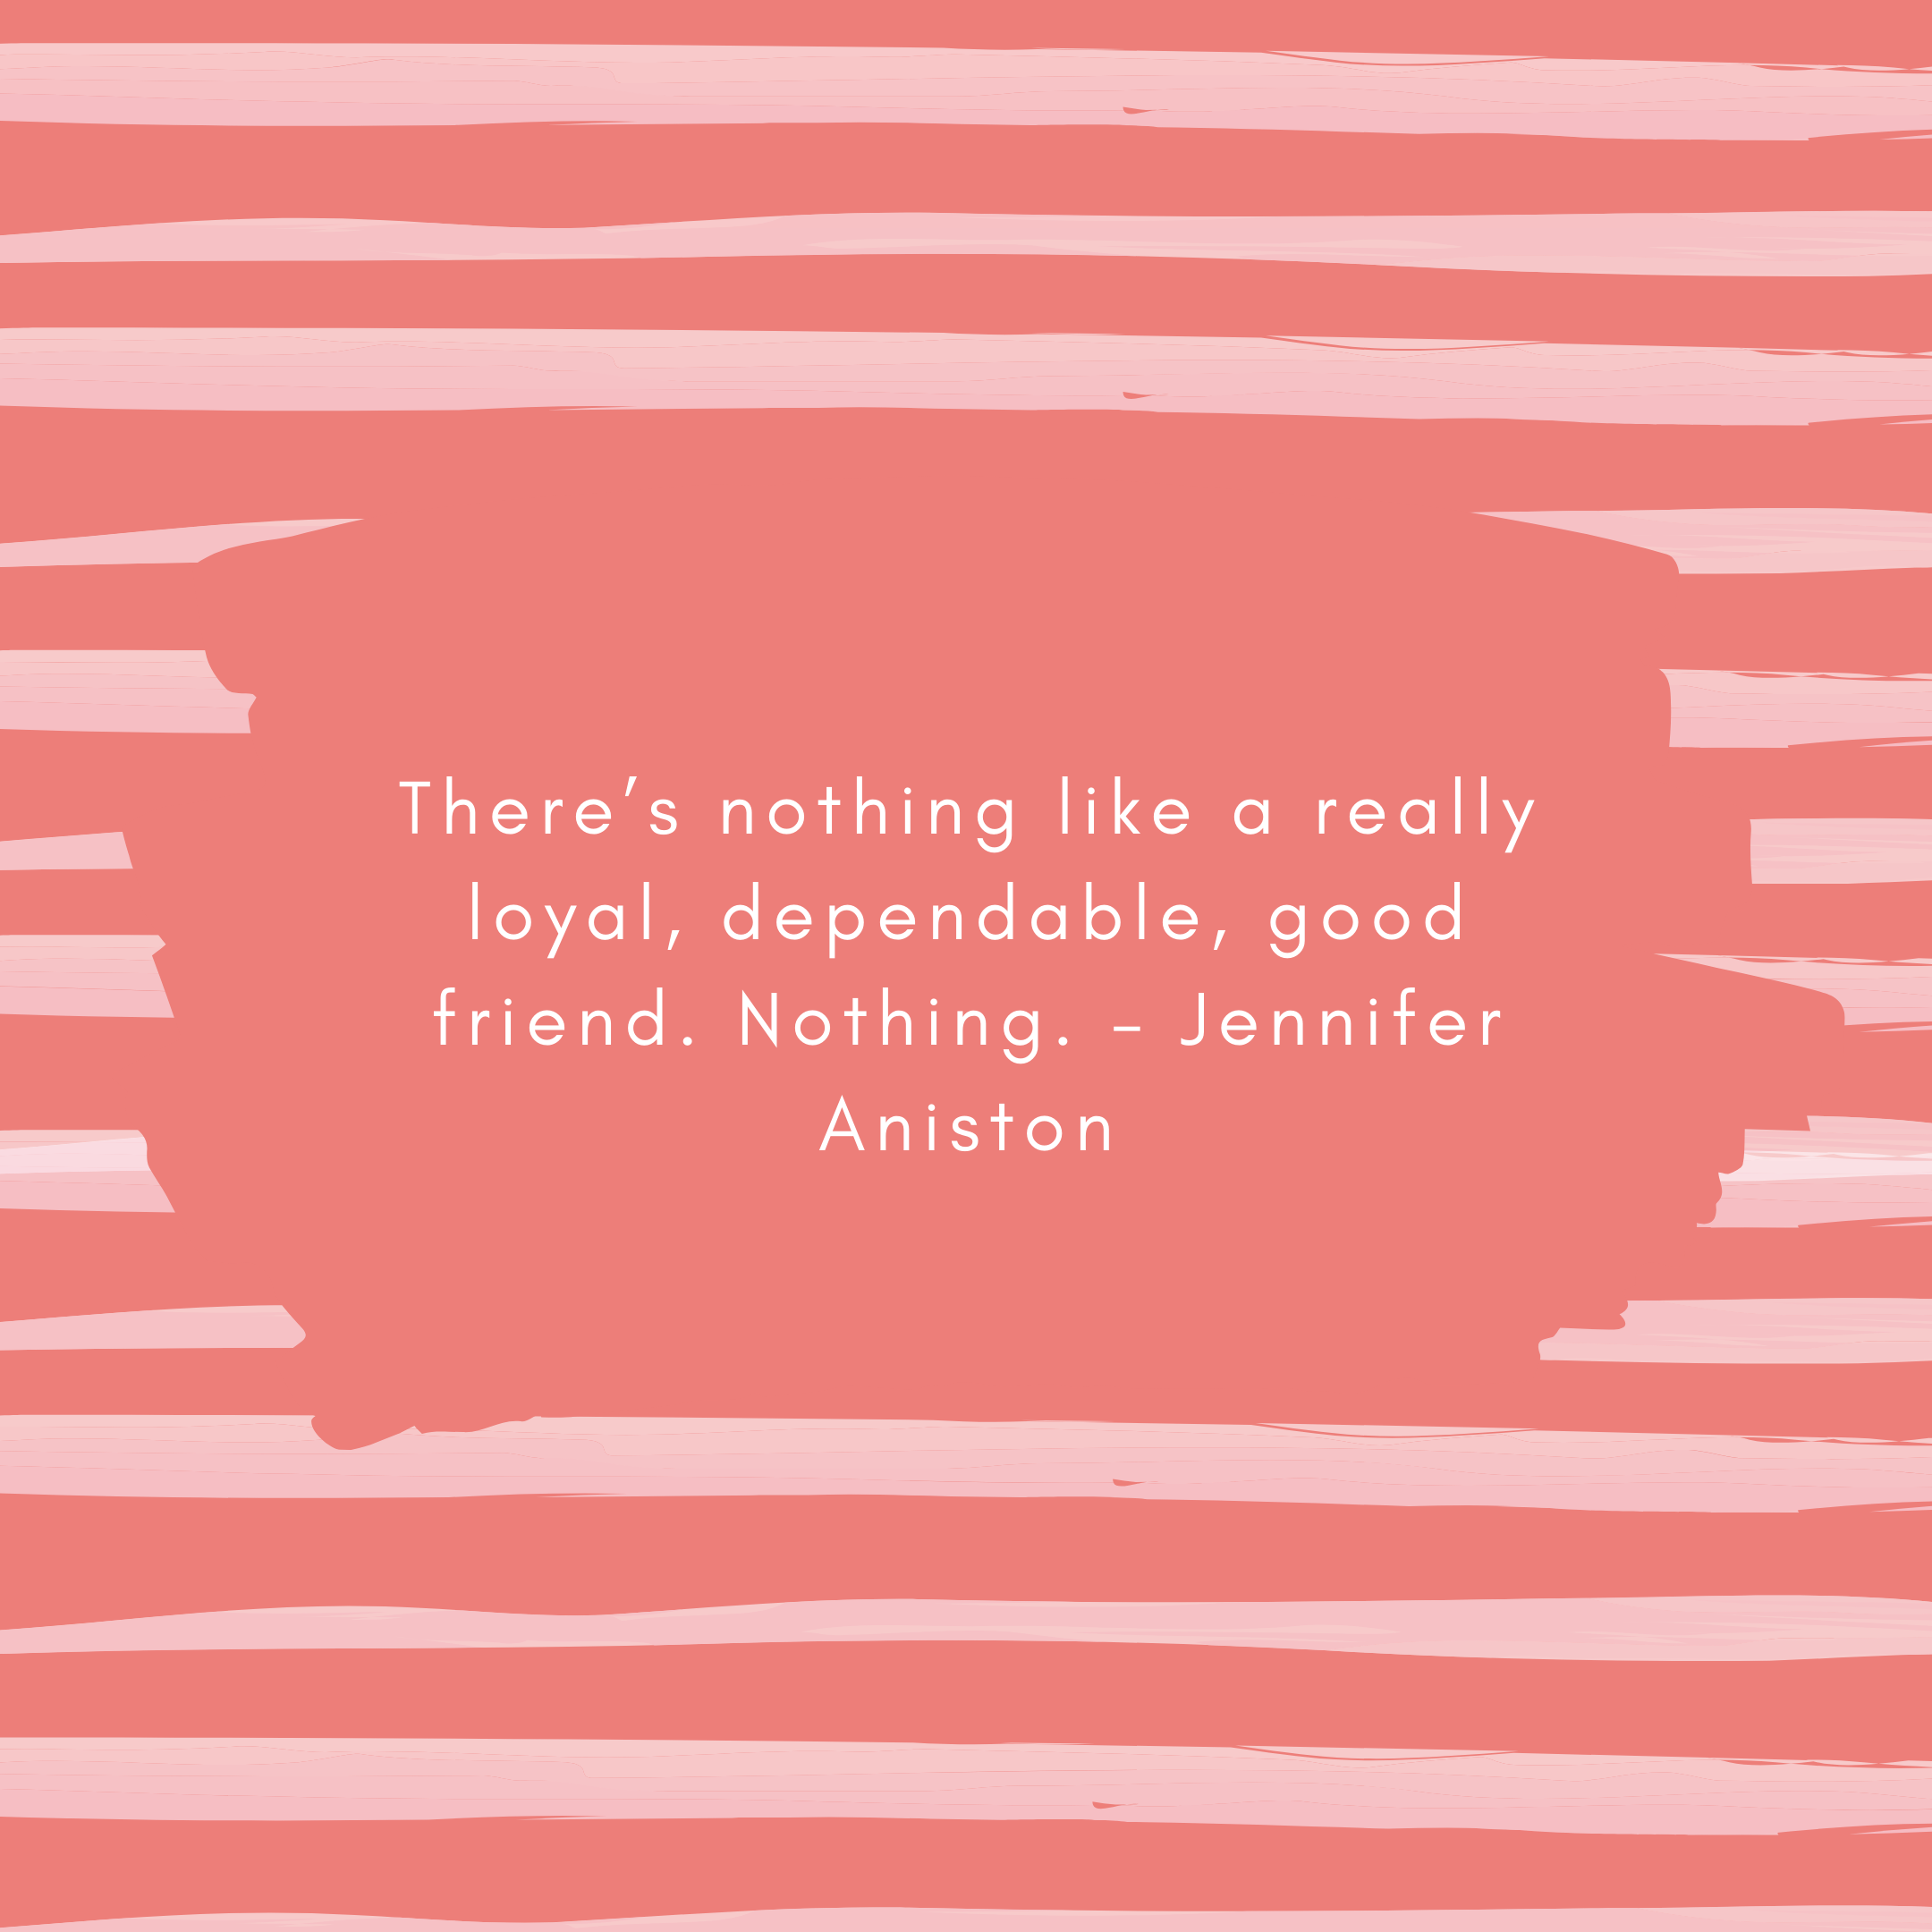 There's nothing like a really loyal, dependable, good friend. Nothing. – Jennifer Aniston